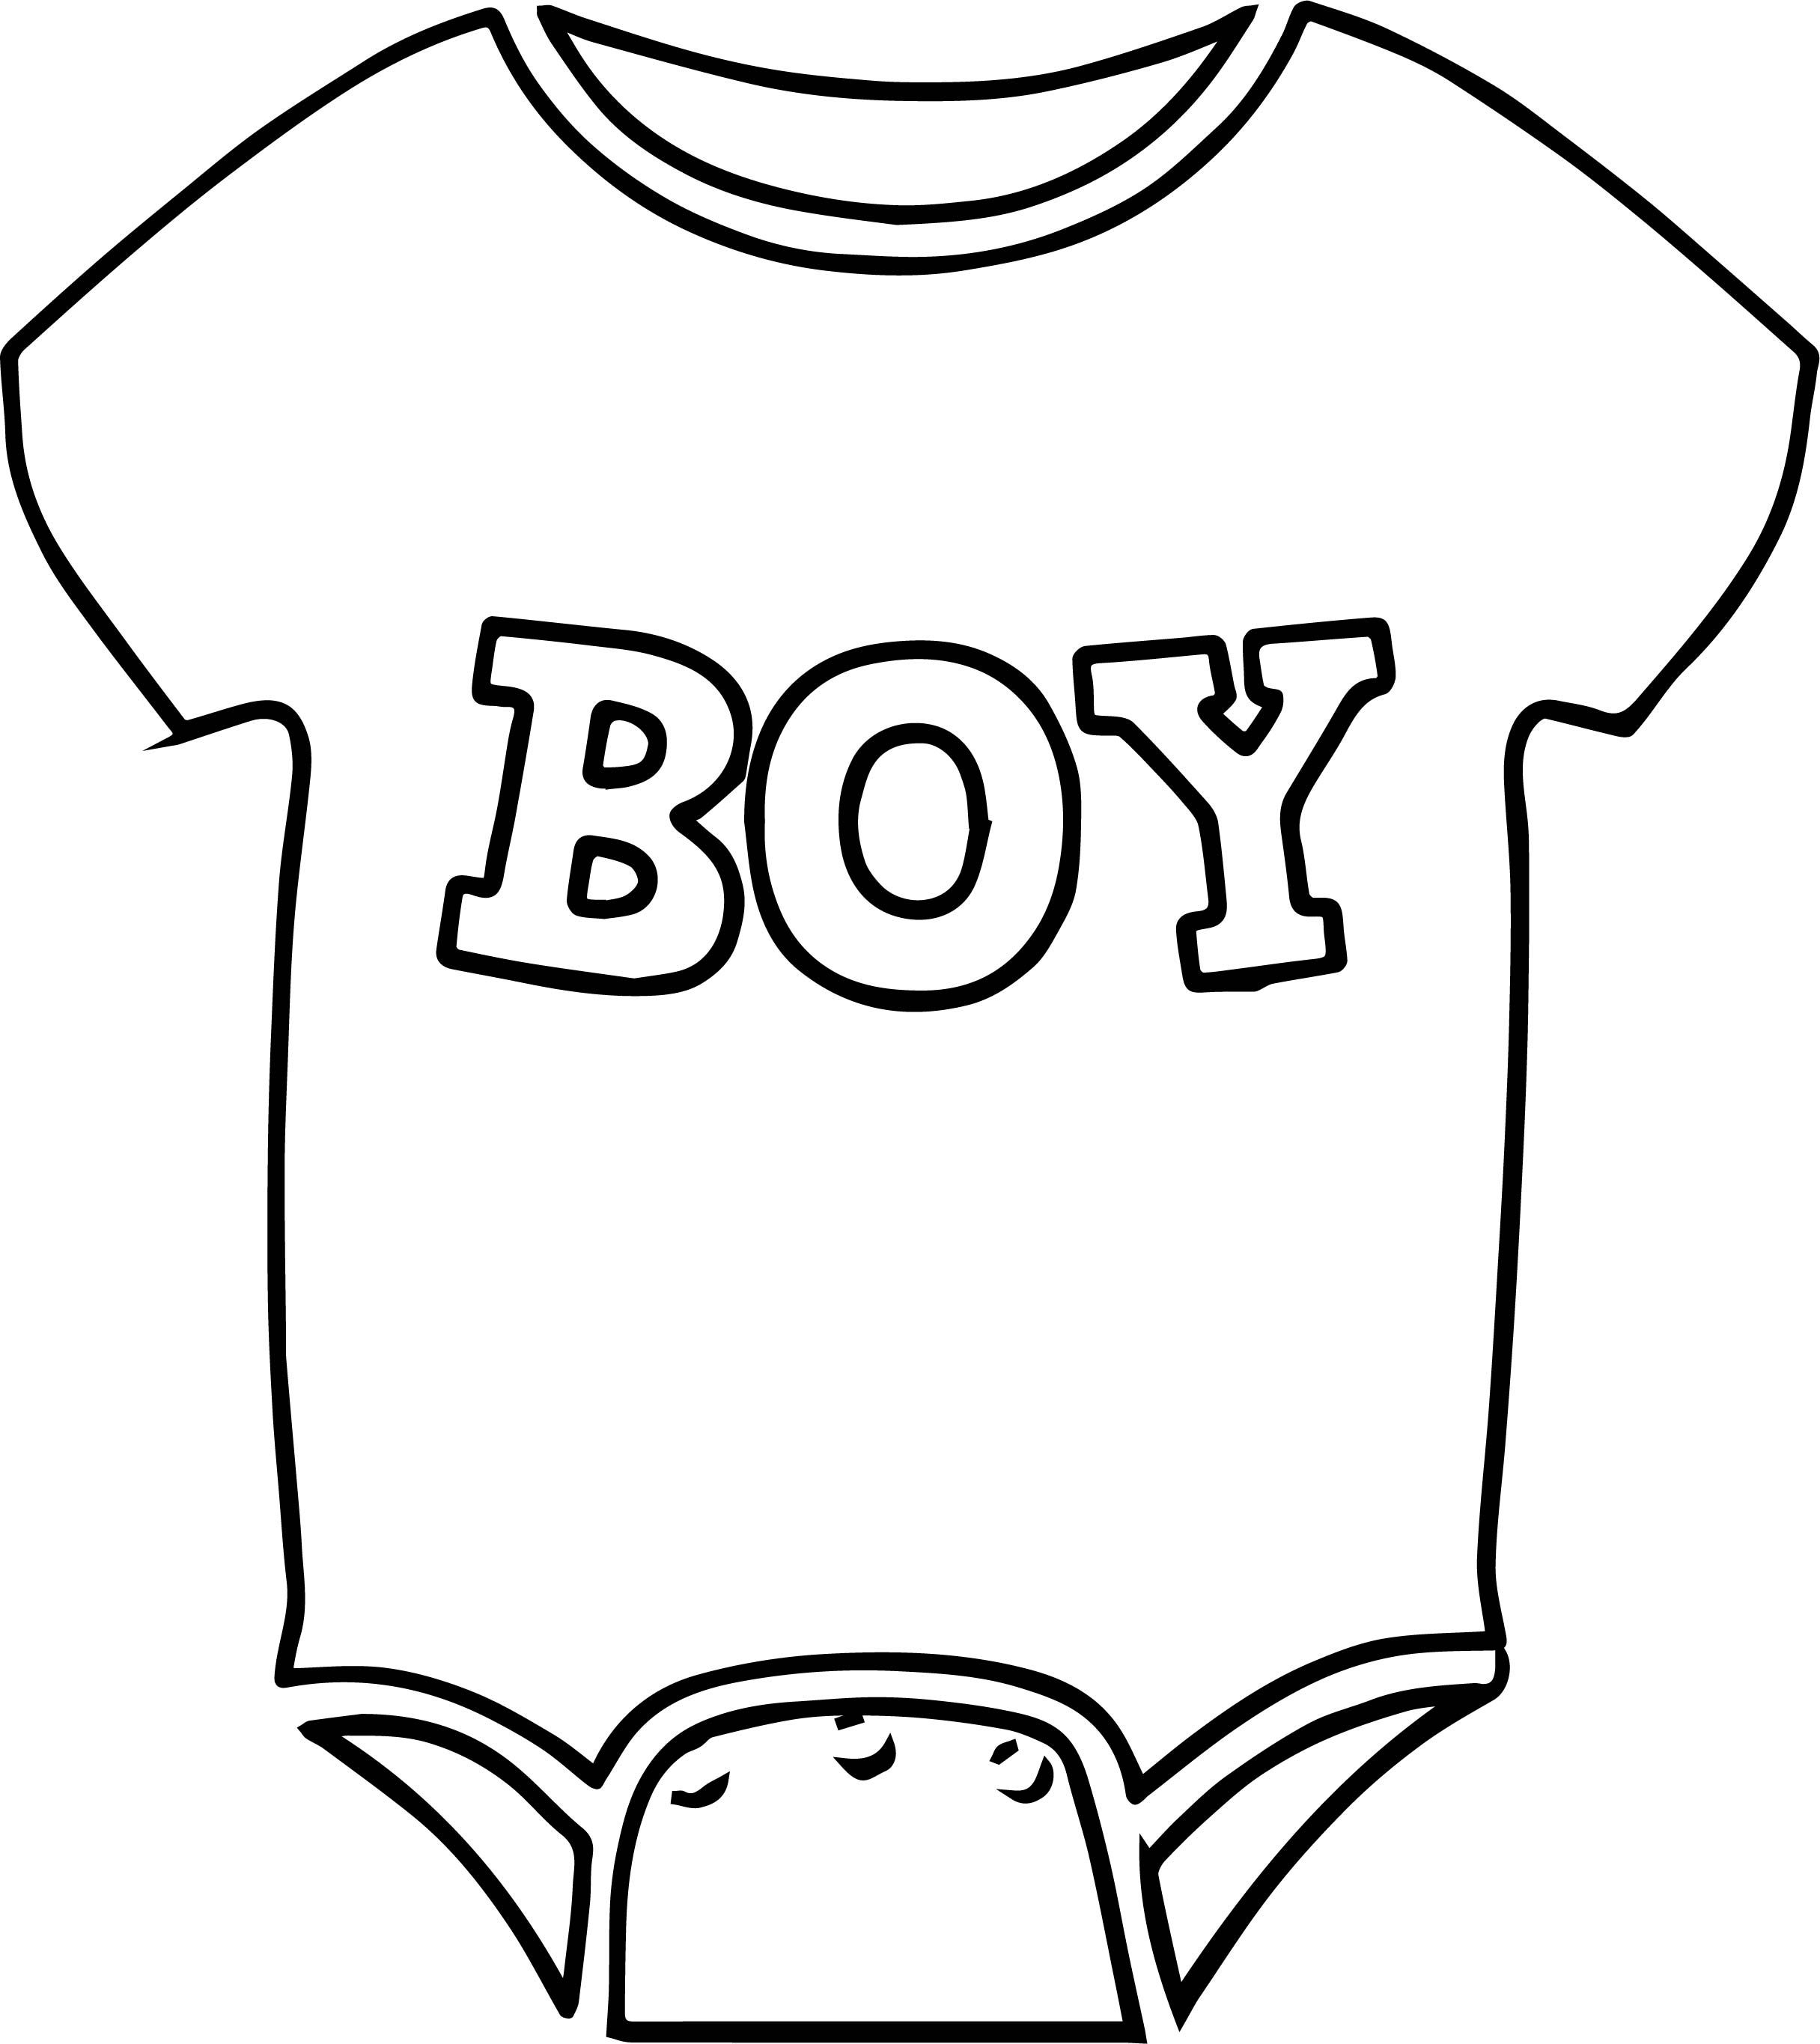 Nice Baby Boy Shirt Coloring Page Coloring Pages For Boys Shirt Drawing Baby Boy Shirts